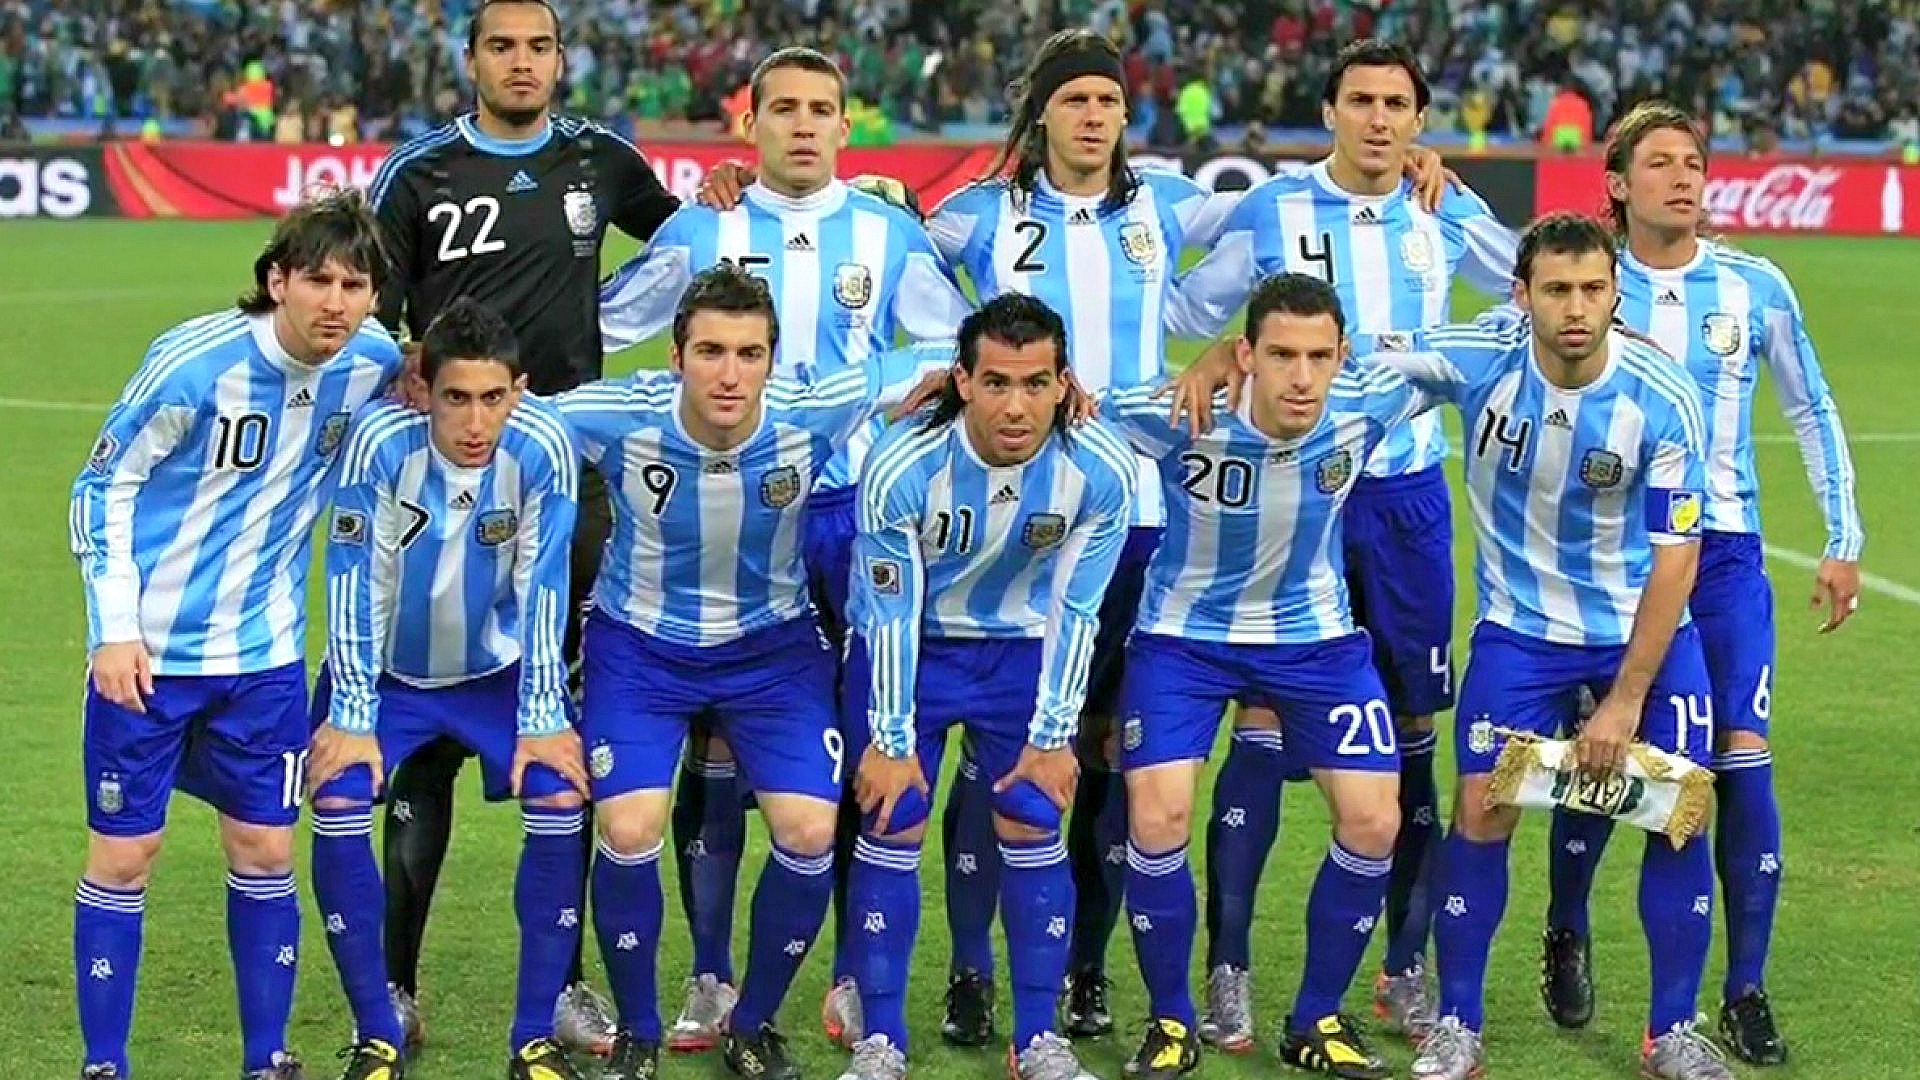 Argentina National Soccer Team Pictures and Photos Getty Images Argentina football team group photo